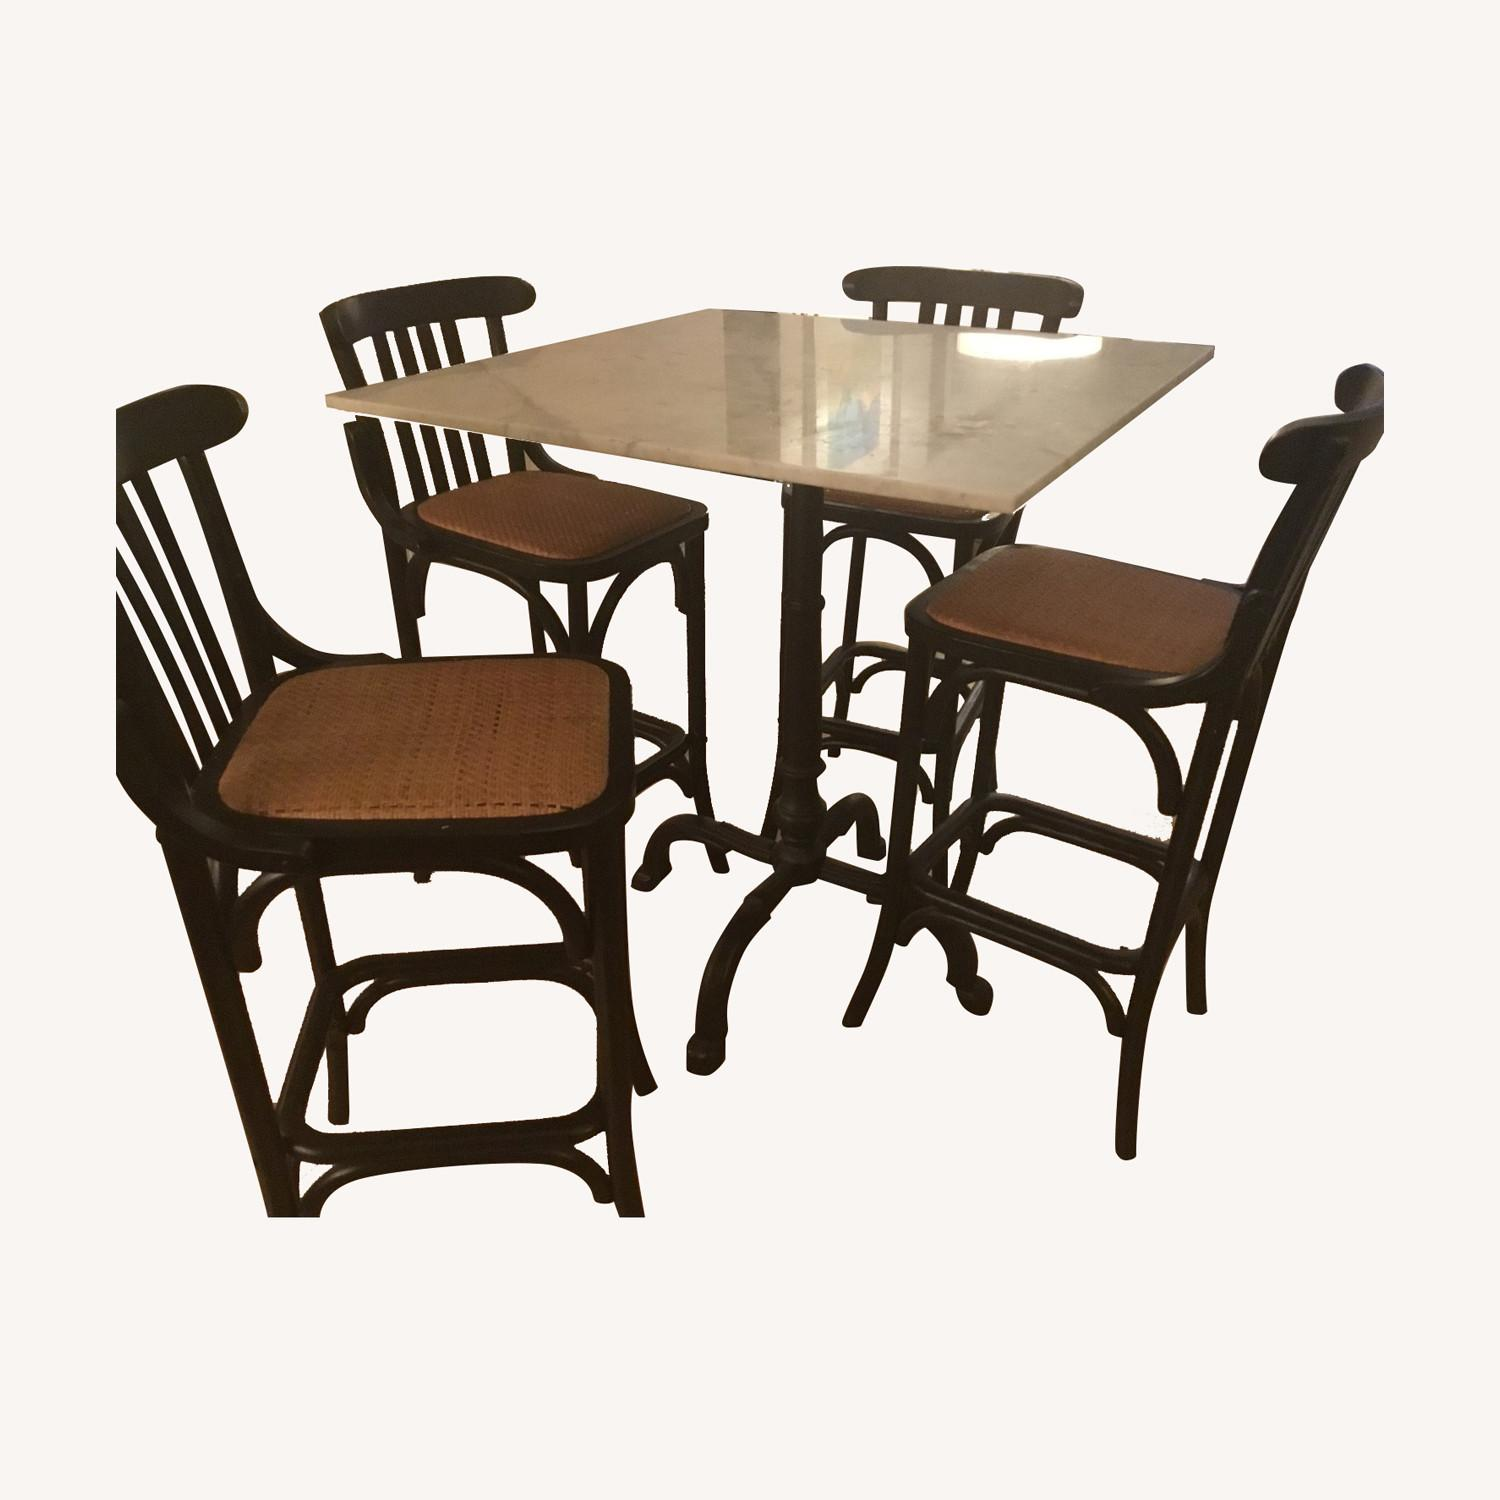 Marble topped table with four matching bar stools - image-0